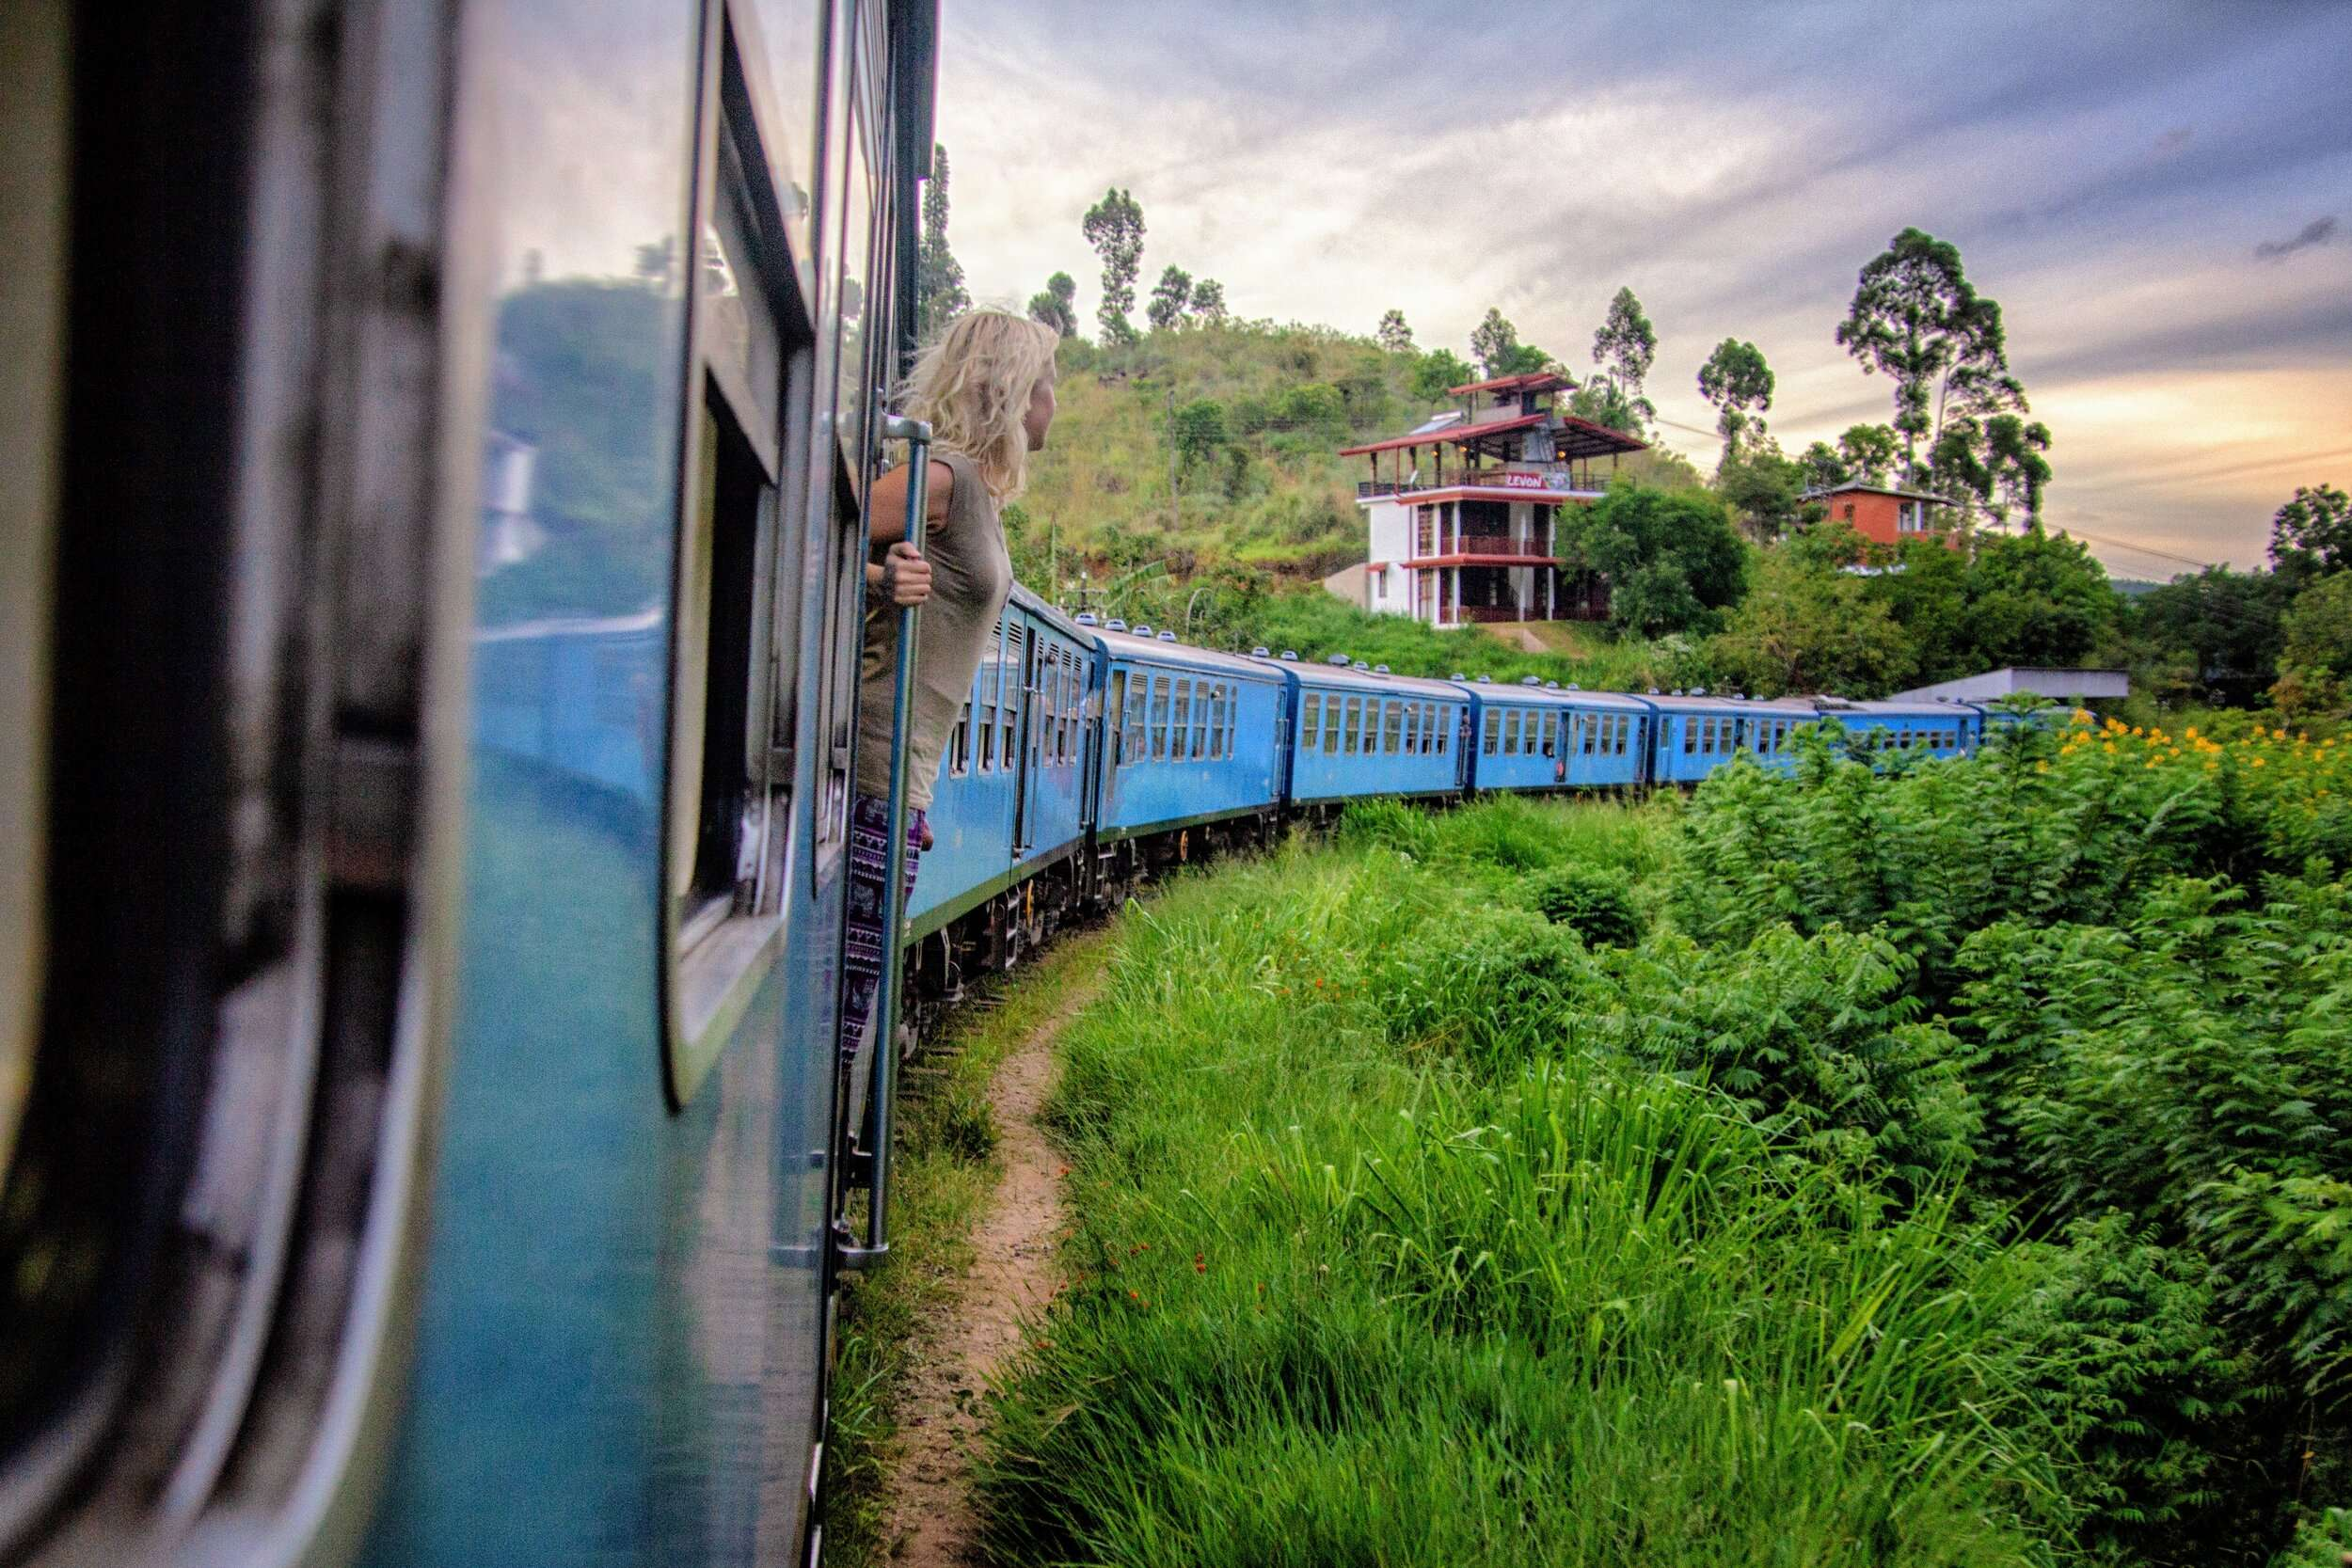 Wonan leans outside a passenger train in Ella, Sri Lanka